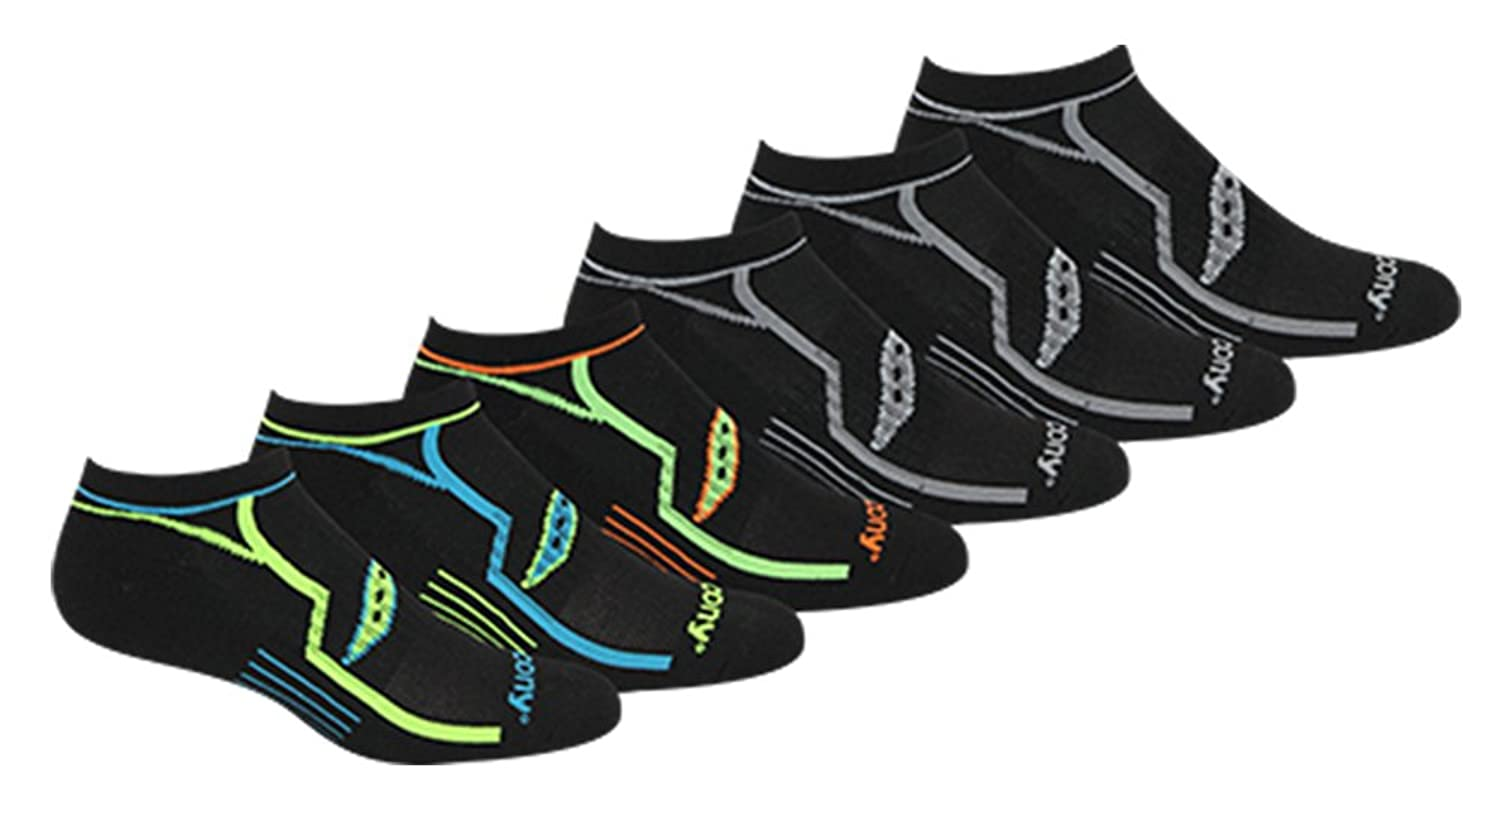 Saucony Performance Sock